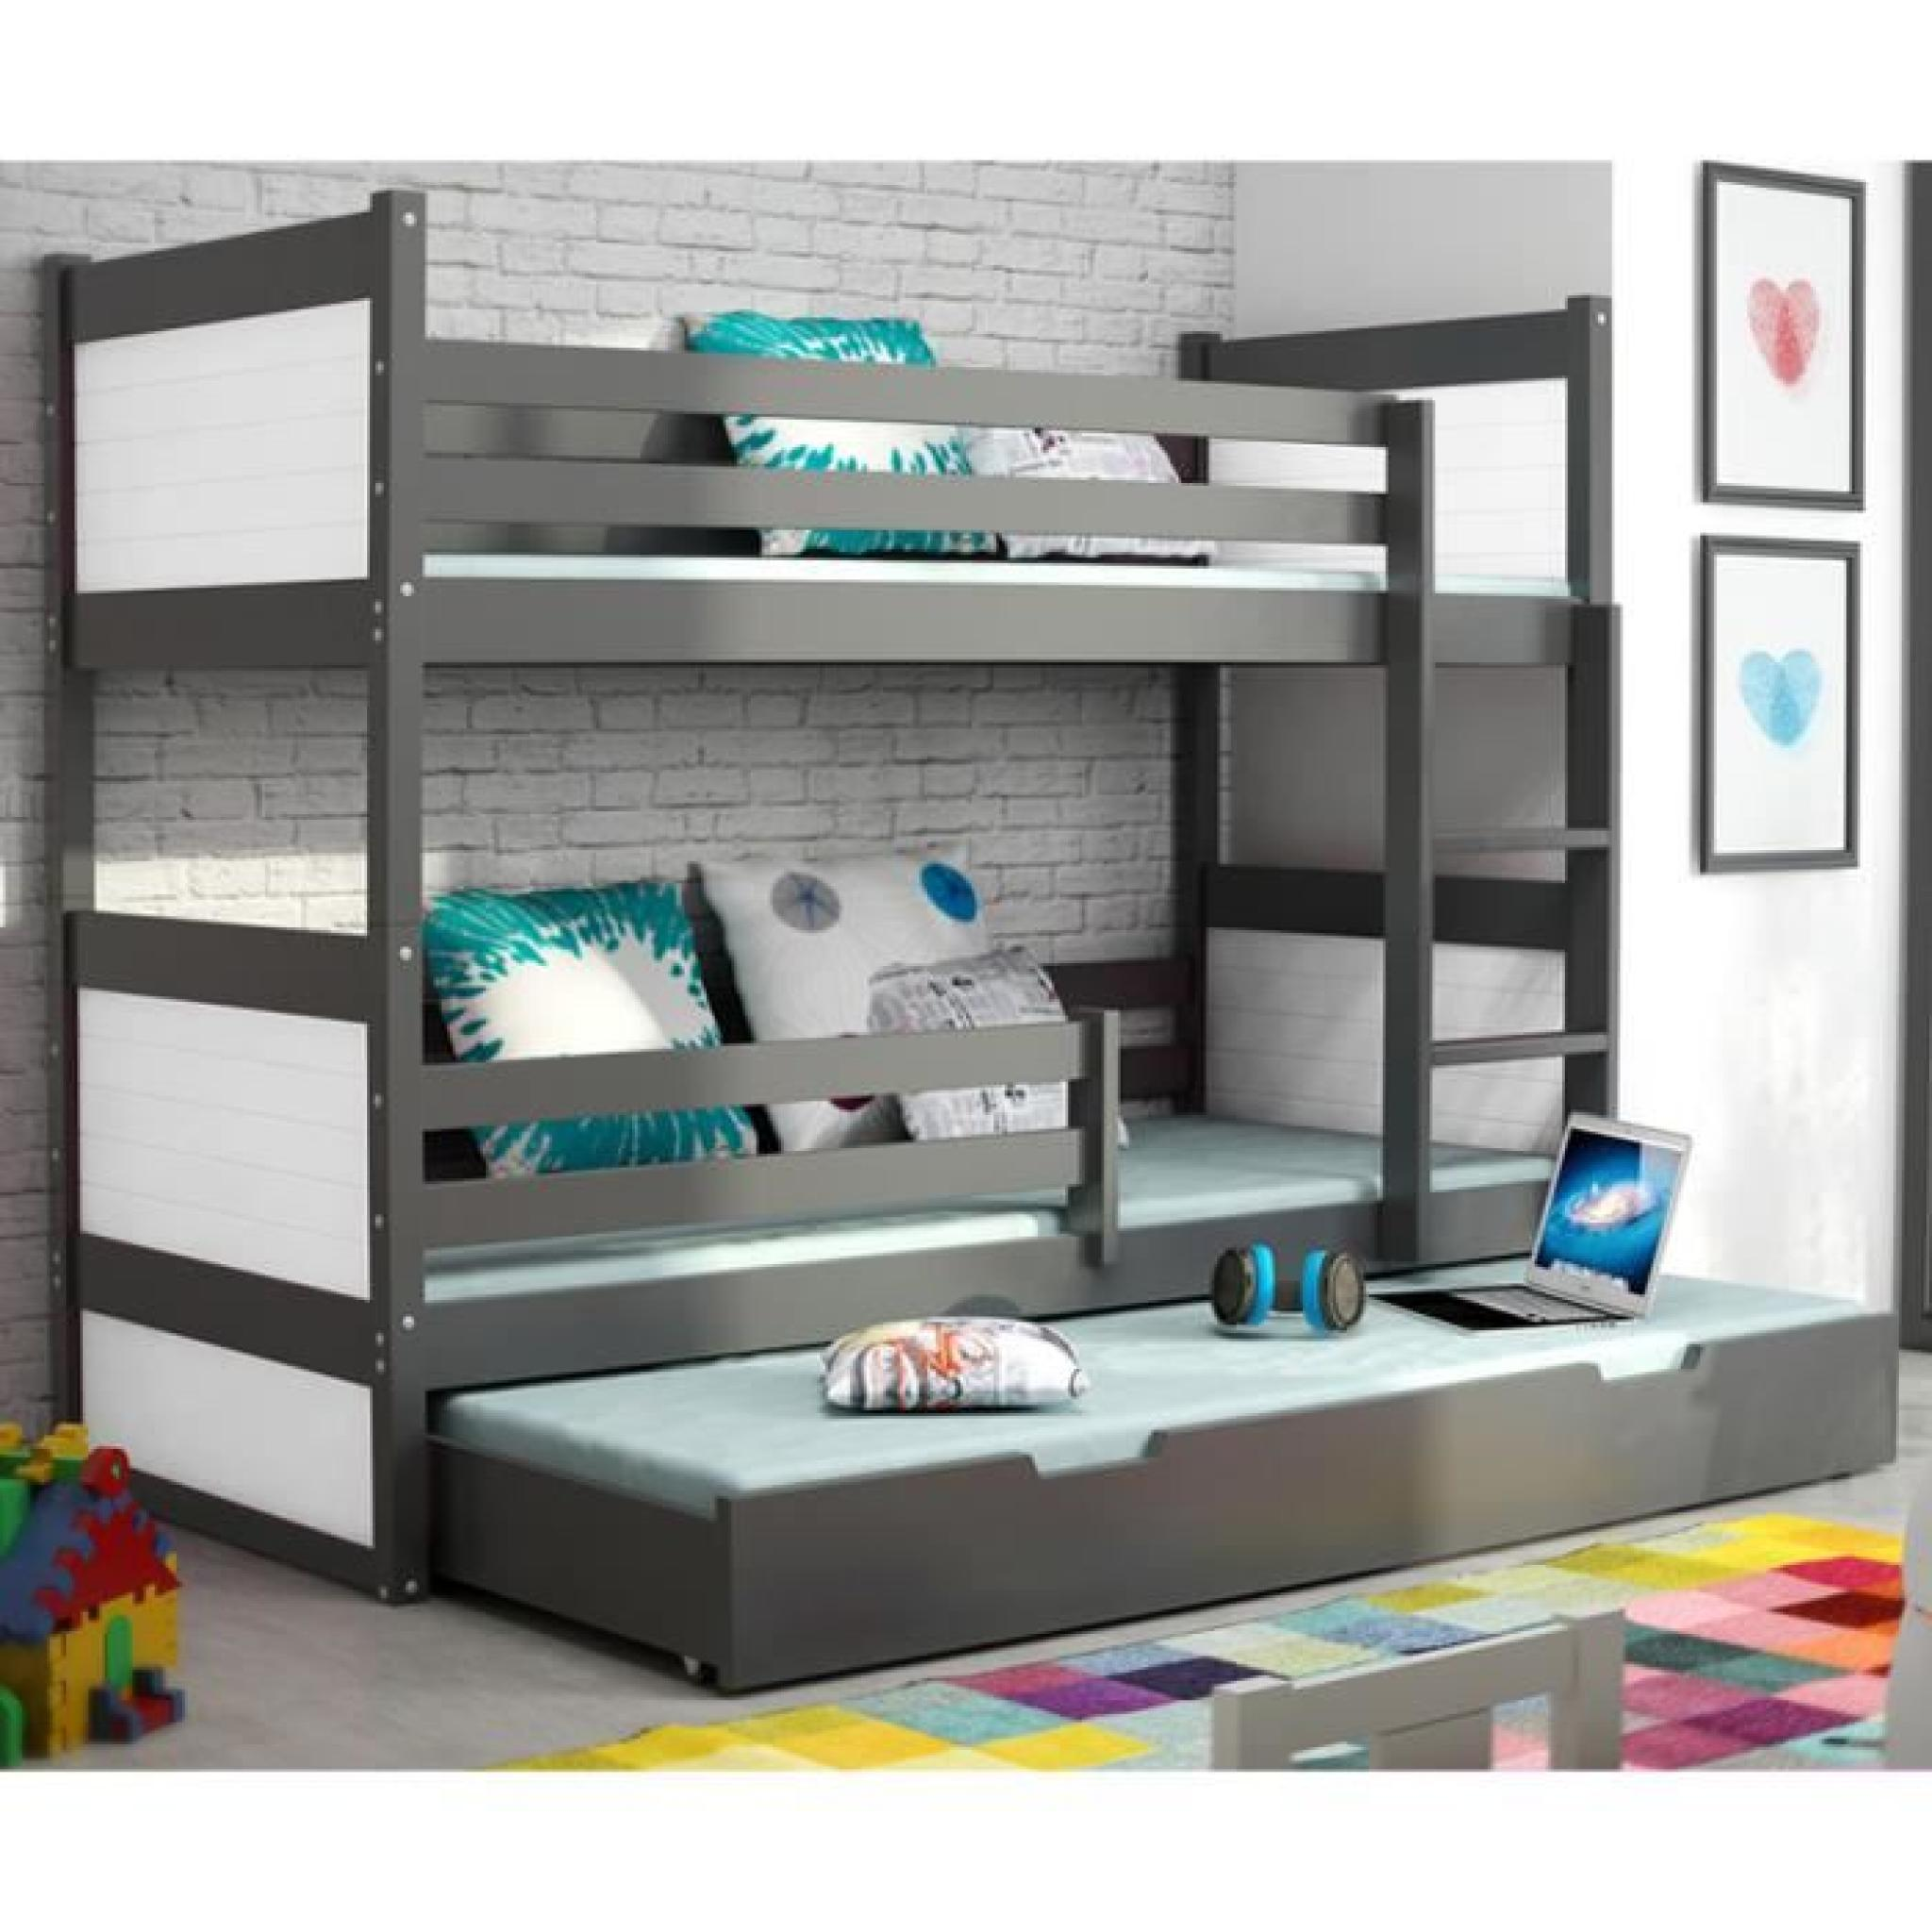 lit superpos rico 3 en pin 200x90 gris achat vente lit superpose pas cher couleur et. Black Bedroom Furniture Sets. Home Design Ideas